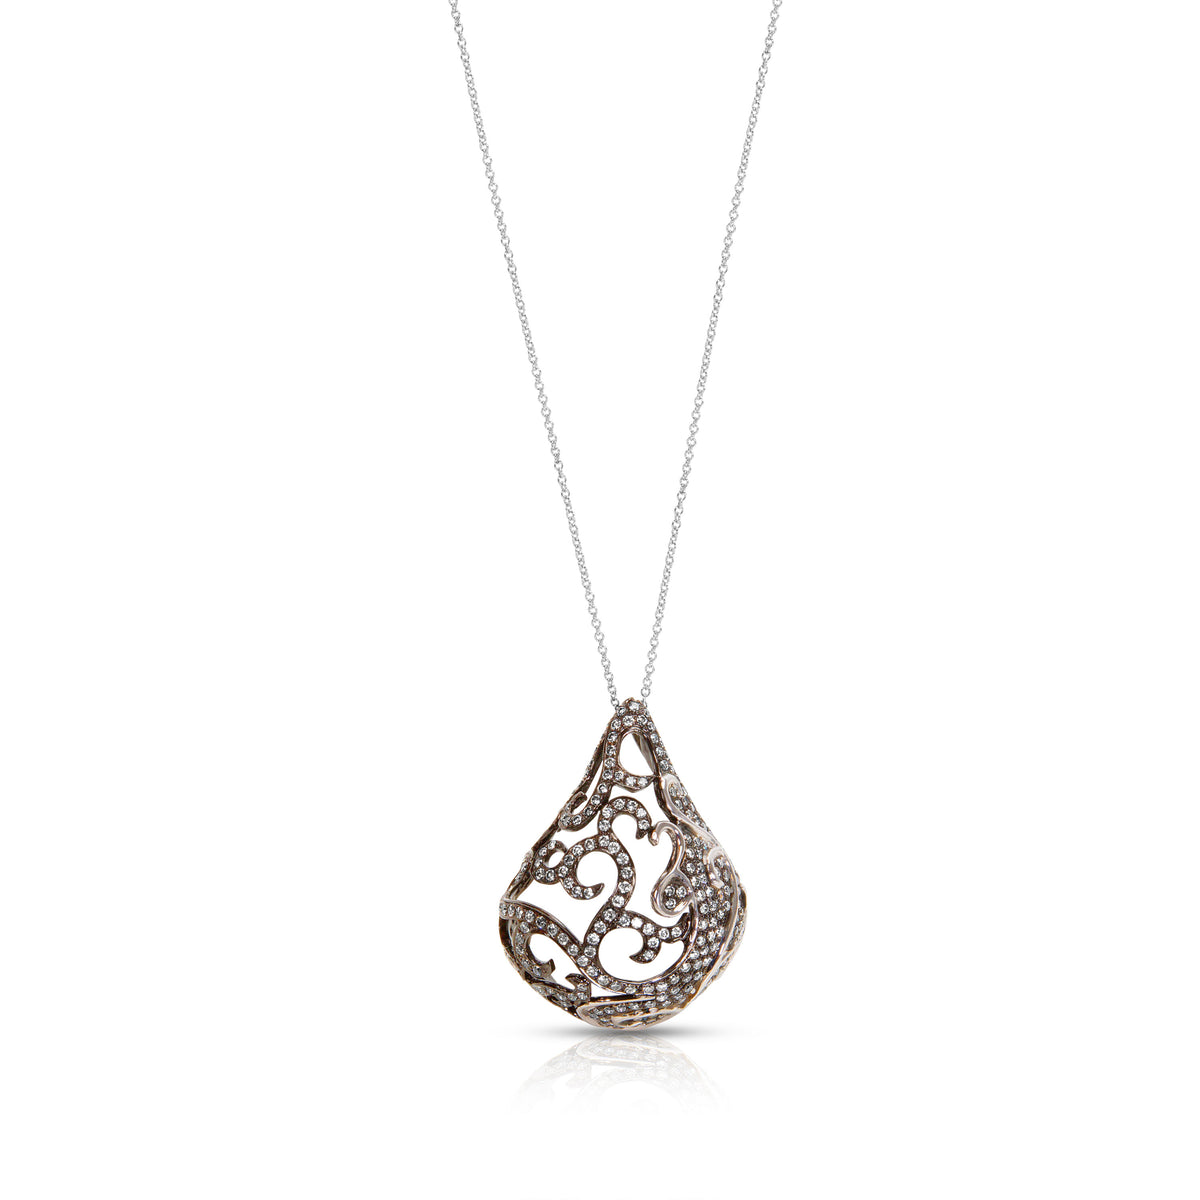 Black Rhodium Diamond Lantern Pendant in 18k White Gold with Chain (1.77 CTW)